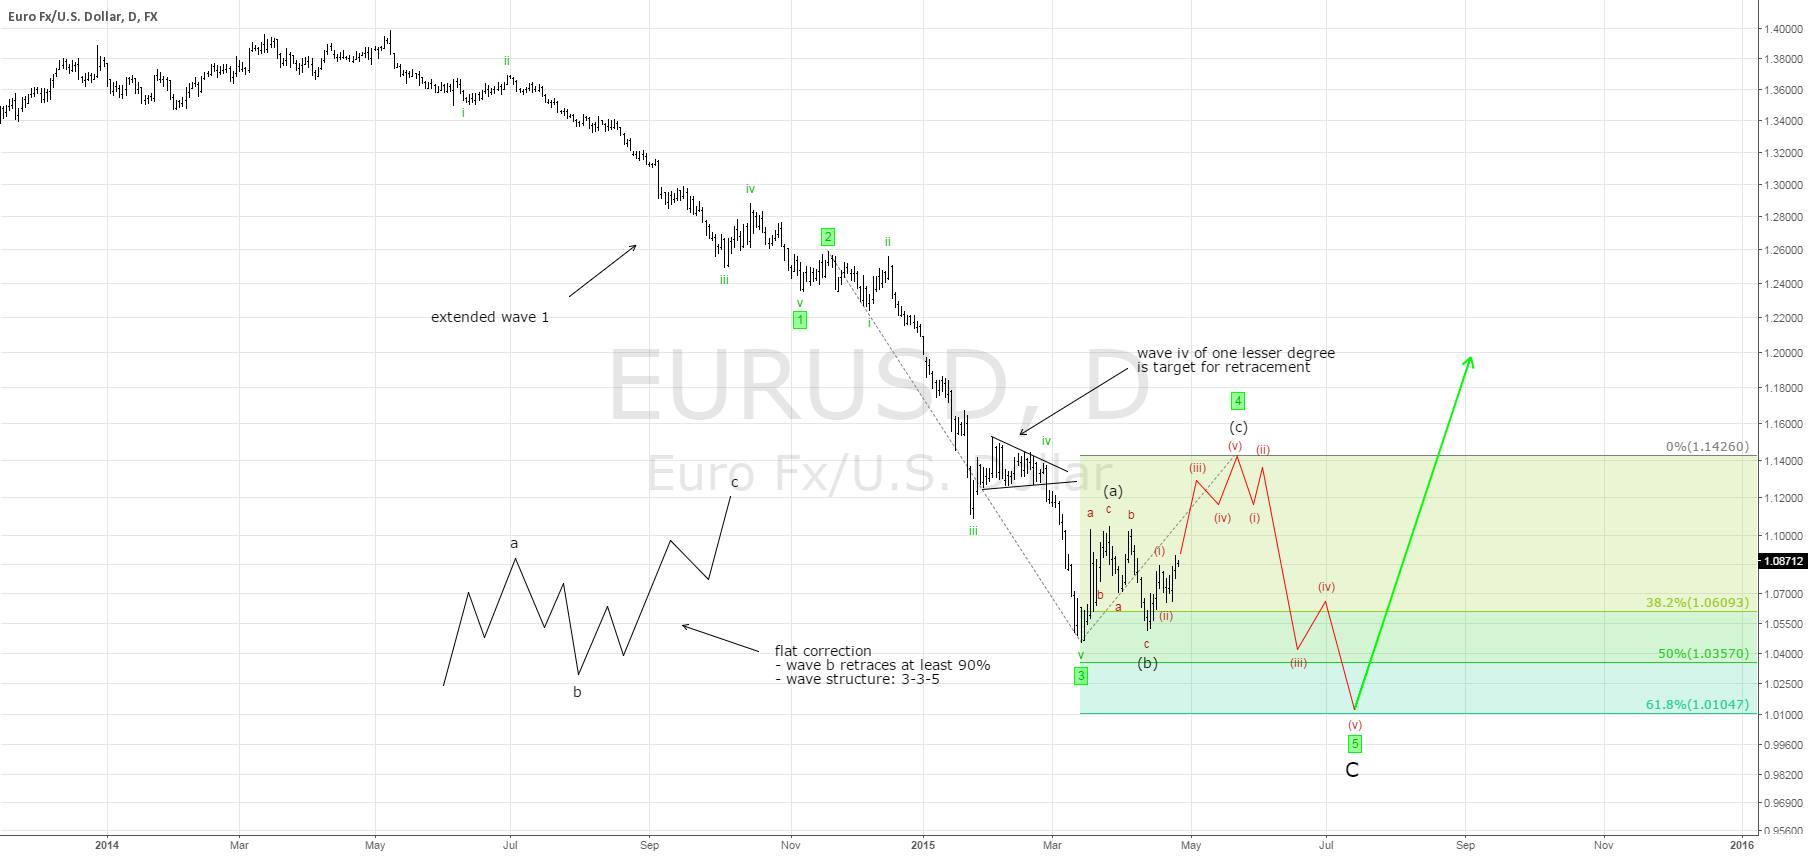 Week7: EURUSD will rise